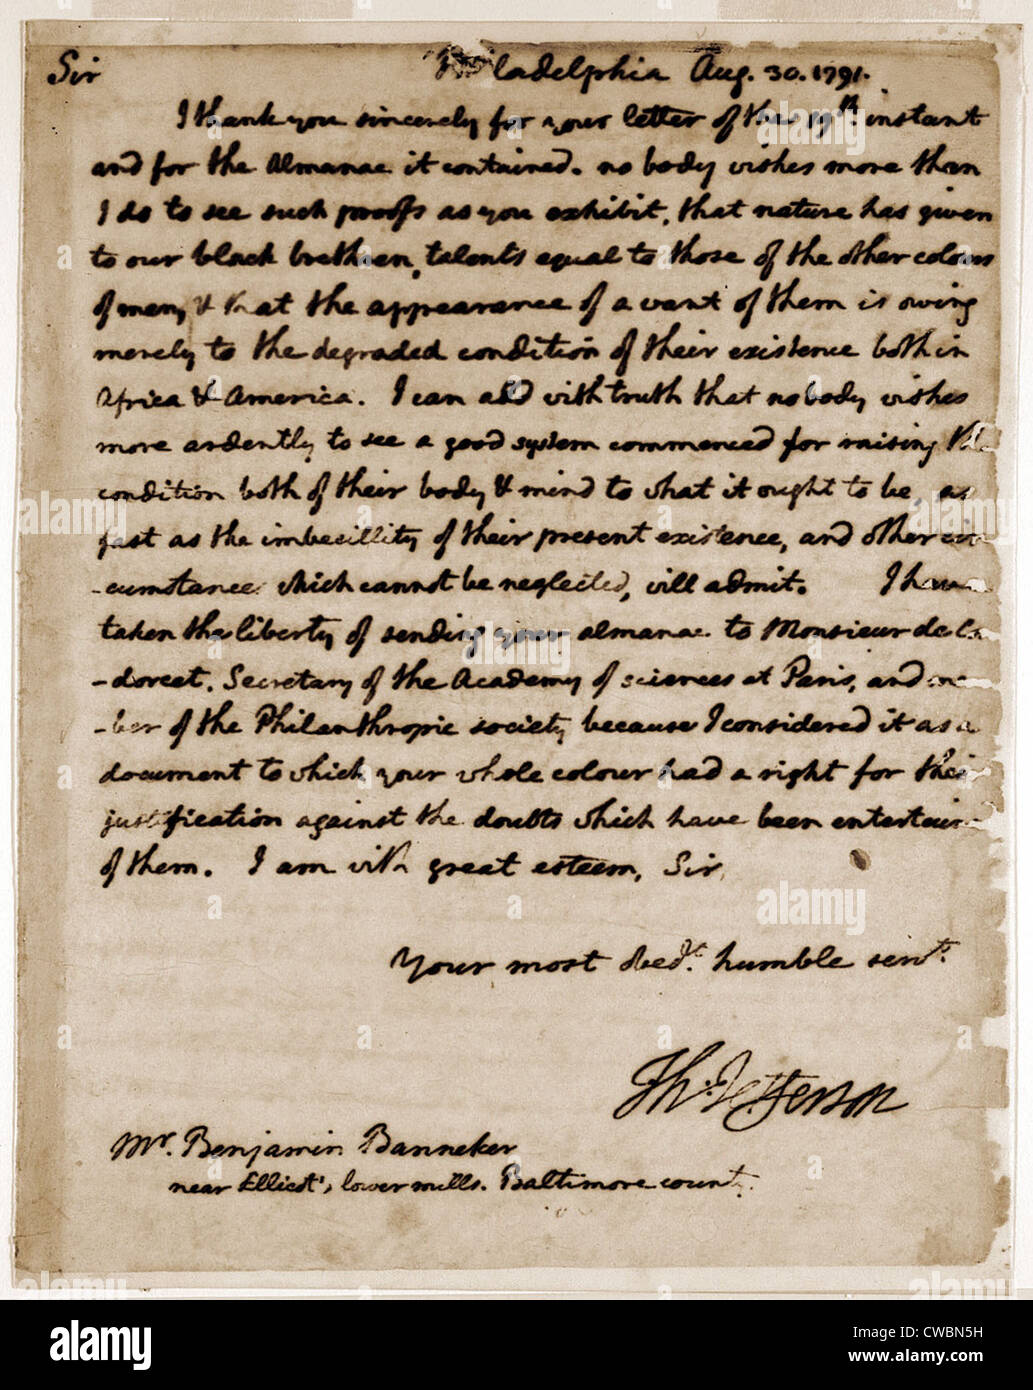 A letter by Thomas Jefferson to Benjamin Banneker (1731-1806) expressing  his belief that blacks possess talents equal to those